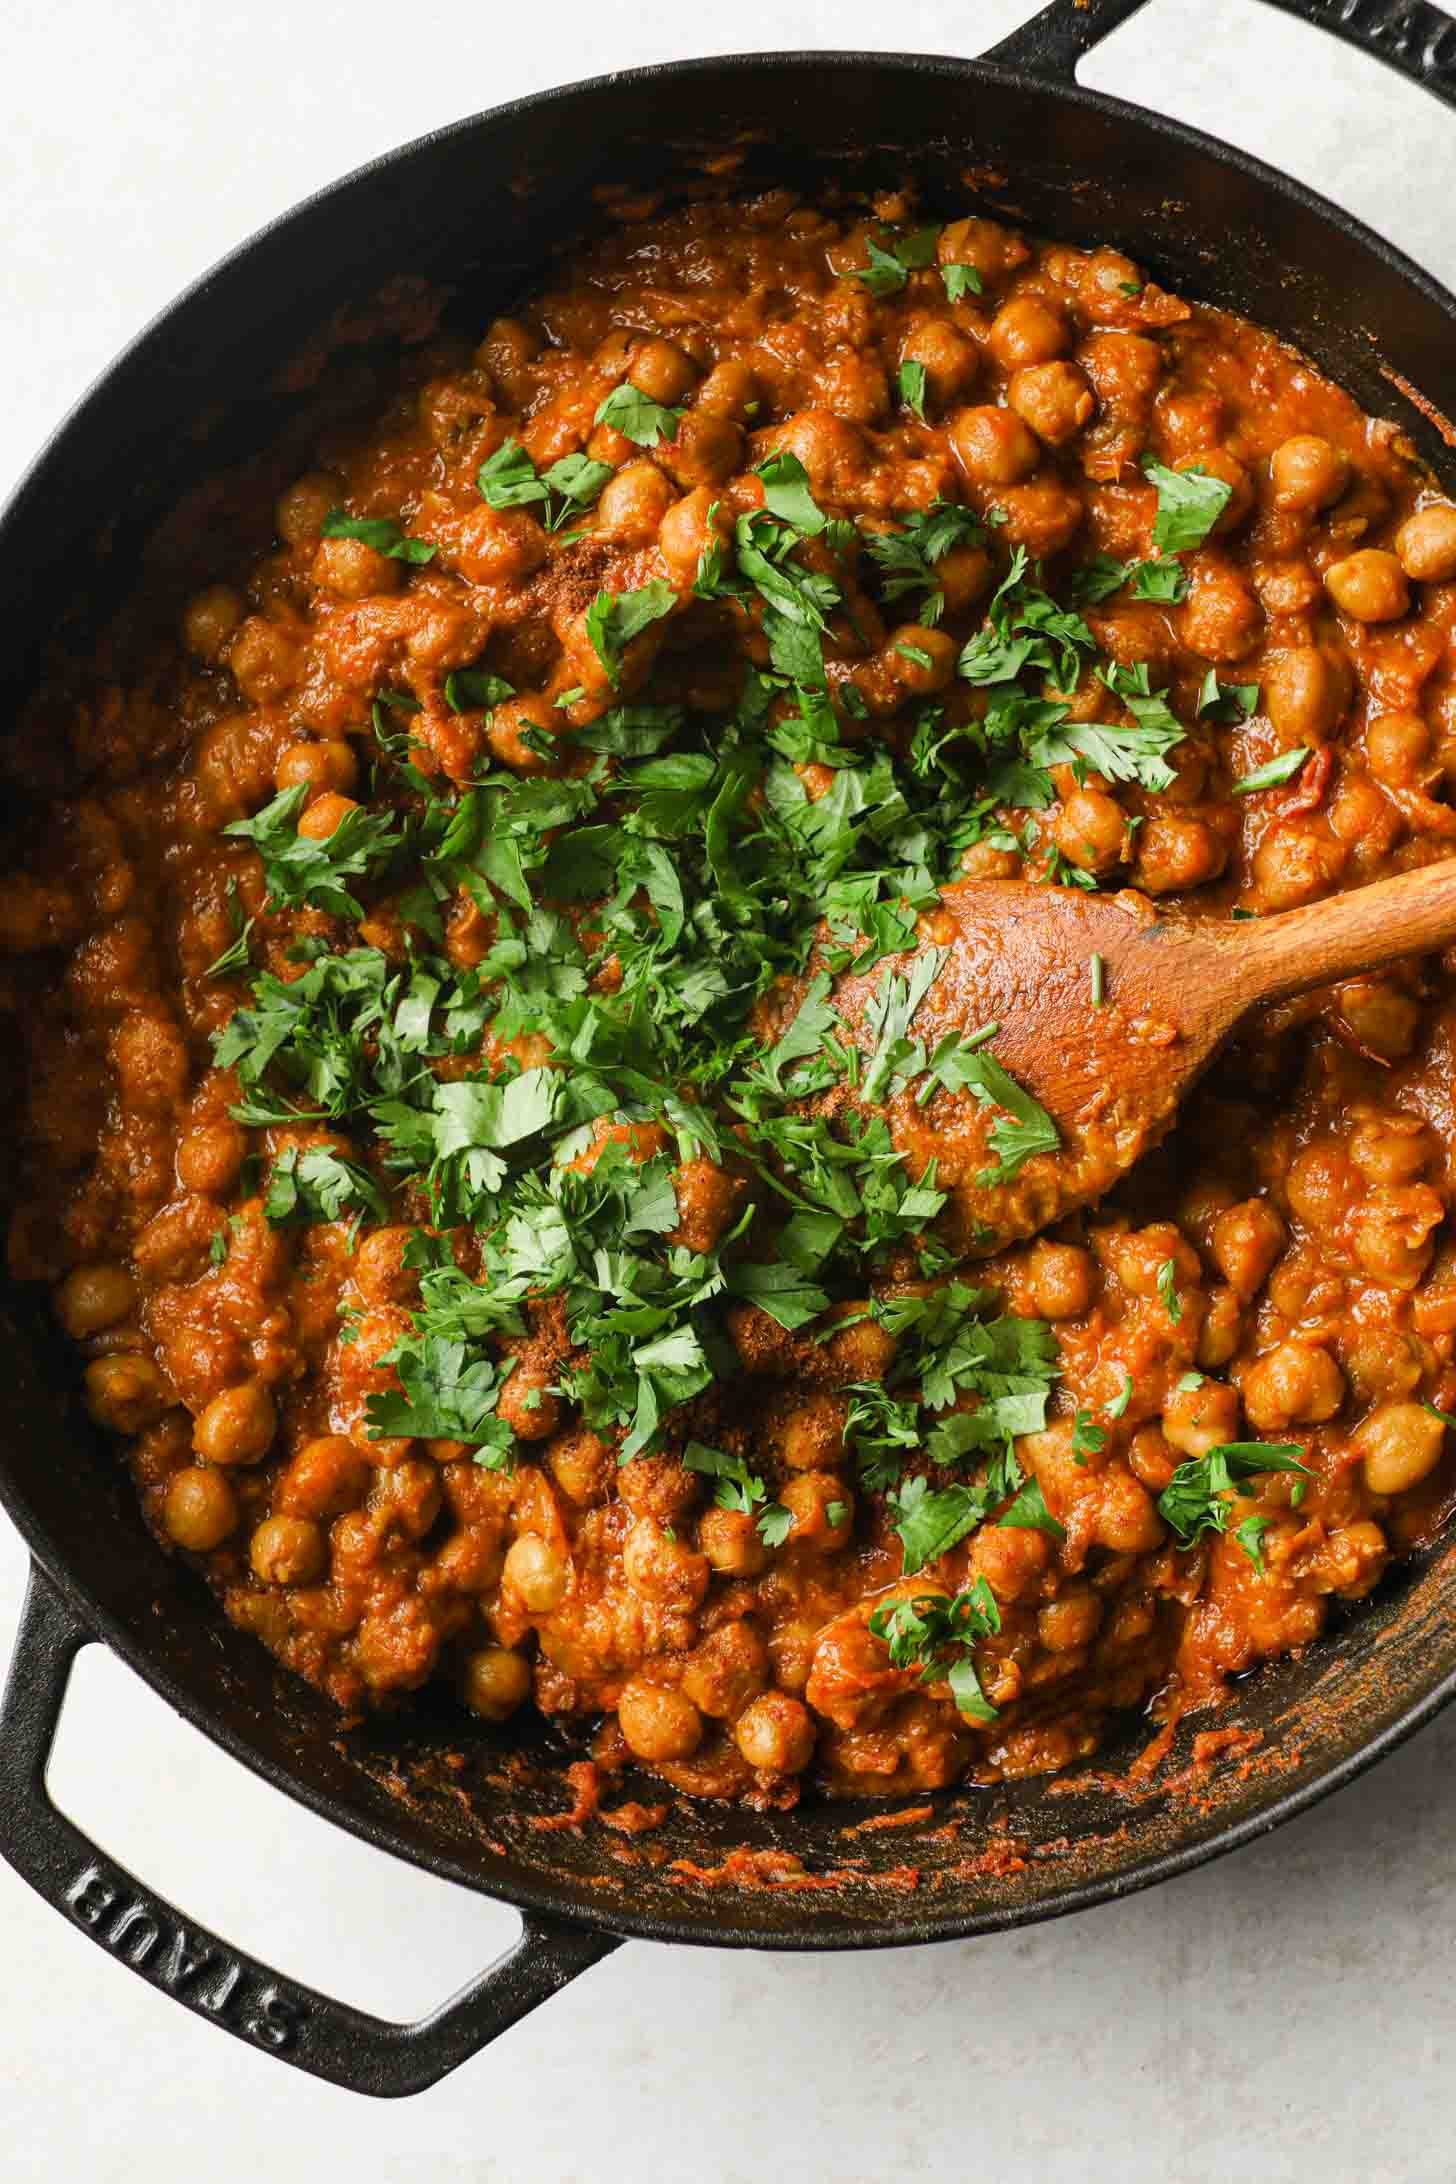 The finished Chickpea Curry garnished with chopped cilantro